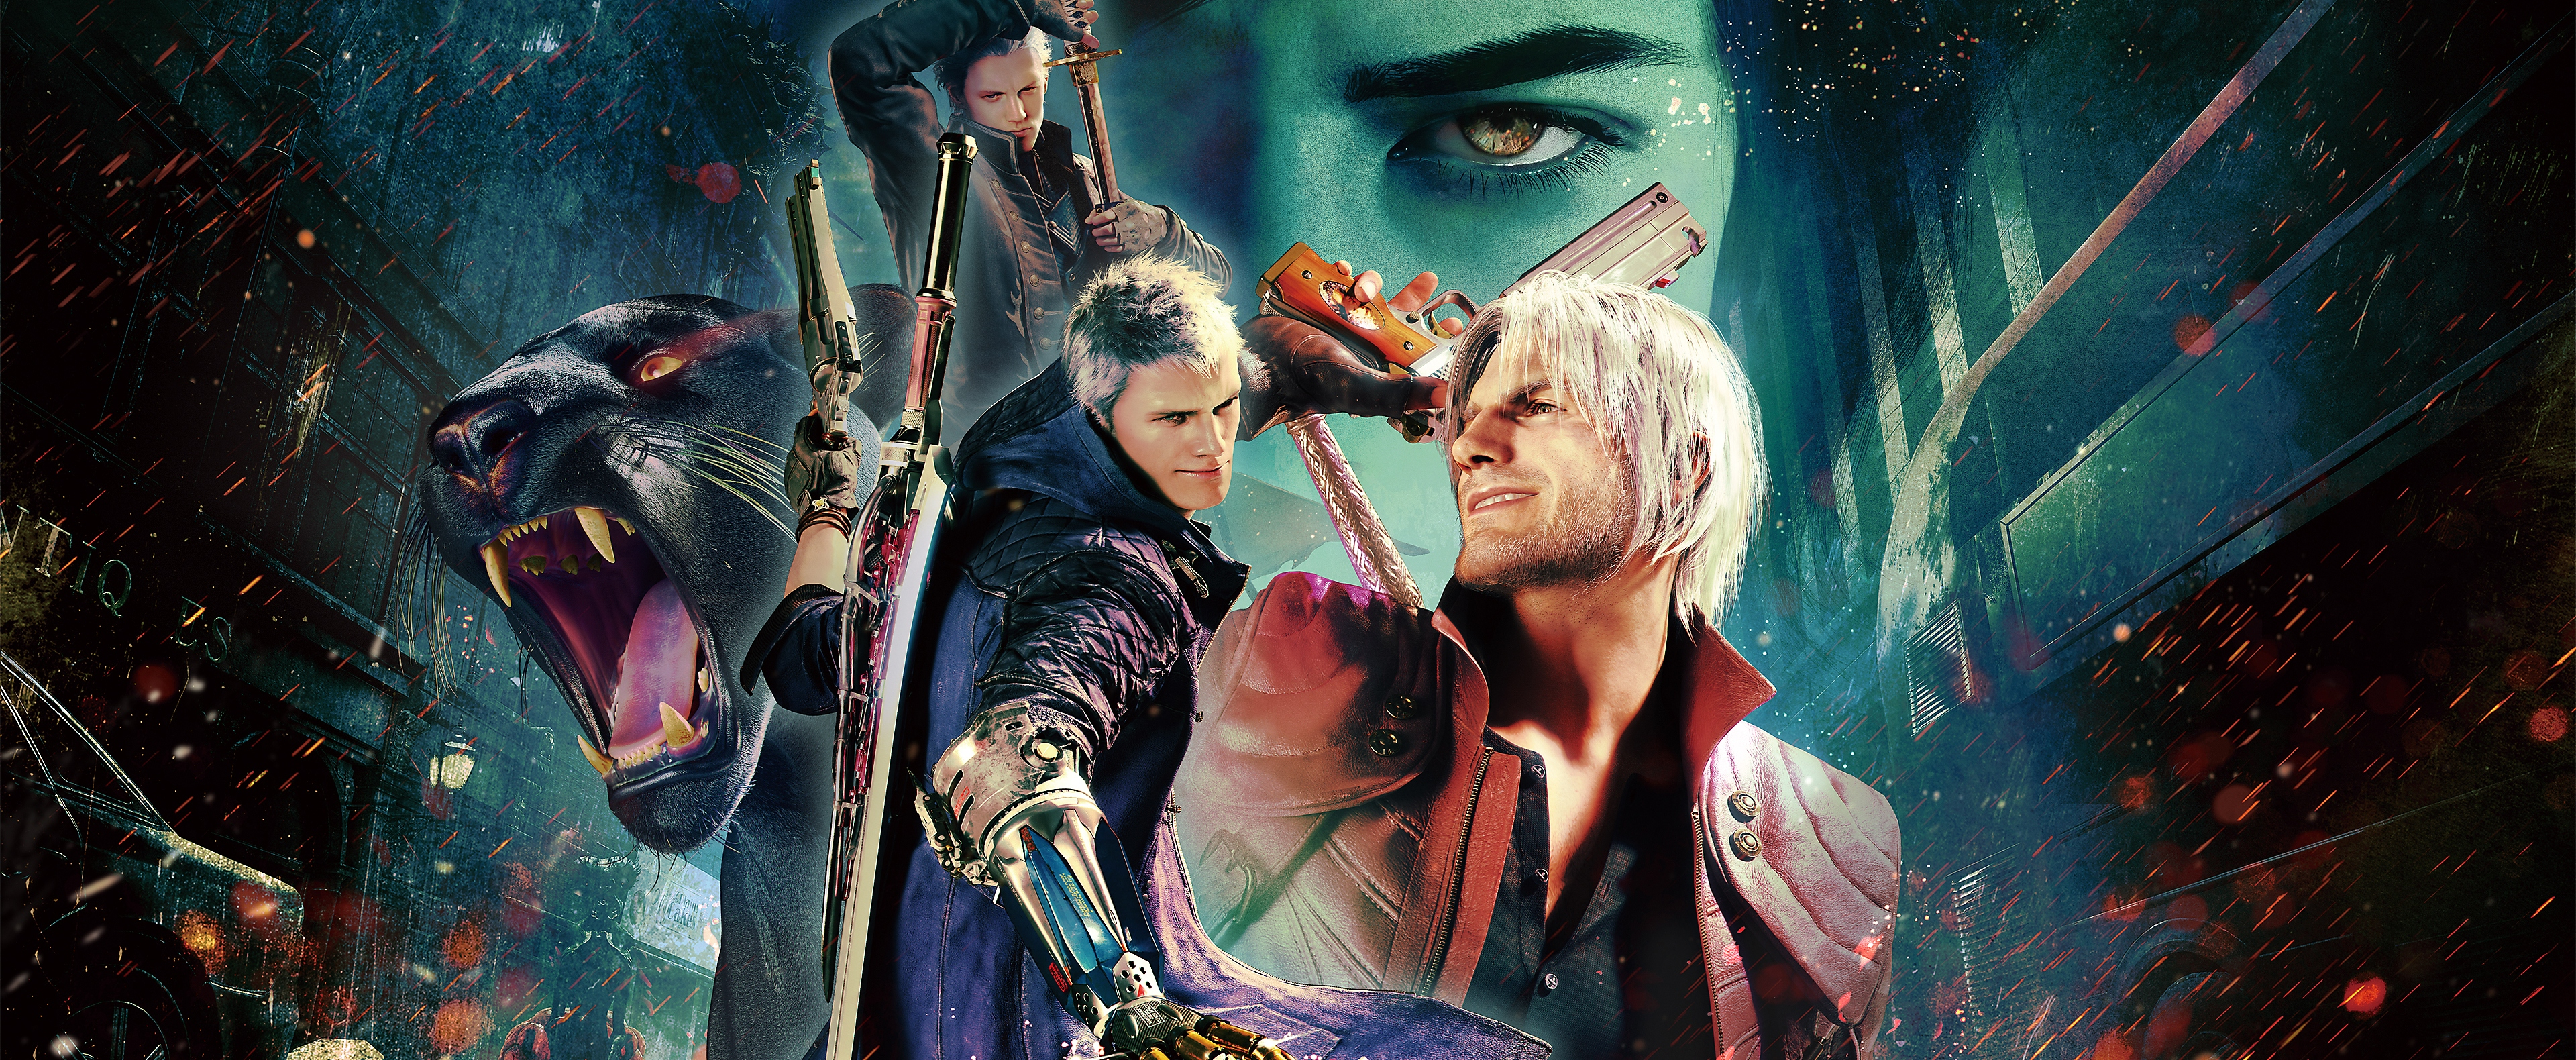 Devil May Cry 5: Special Edition - F11/kruis-toets Art